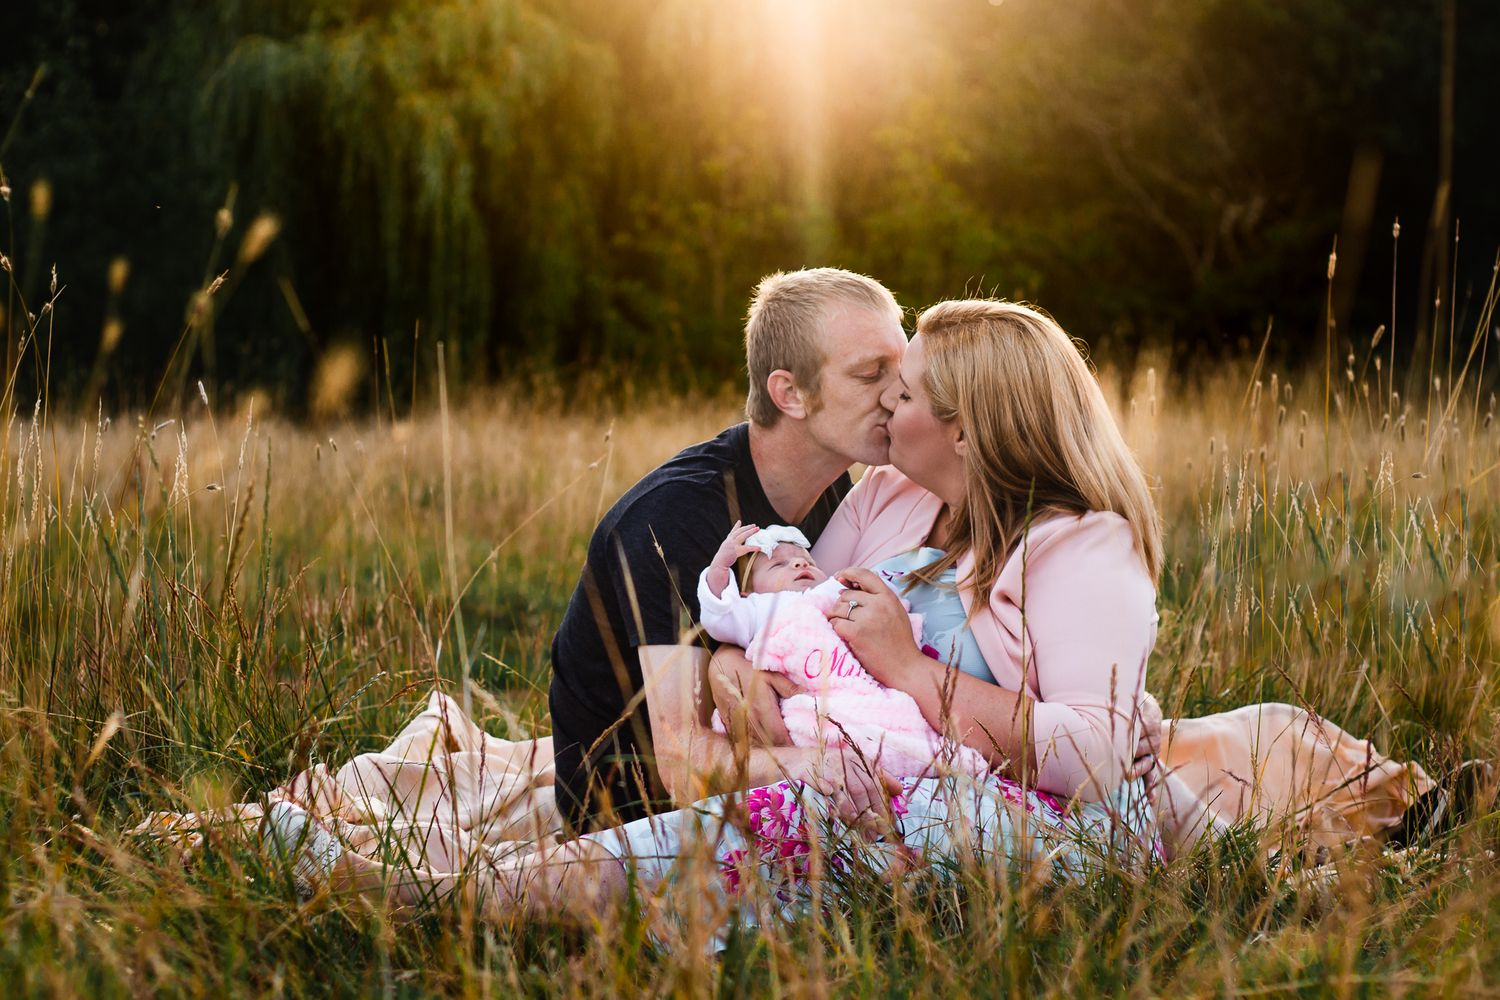 In a field in Havant at sunset new parents sit with their newborn daughter, kissing in the long grass.